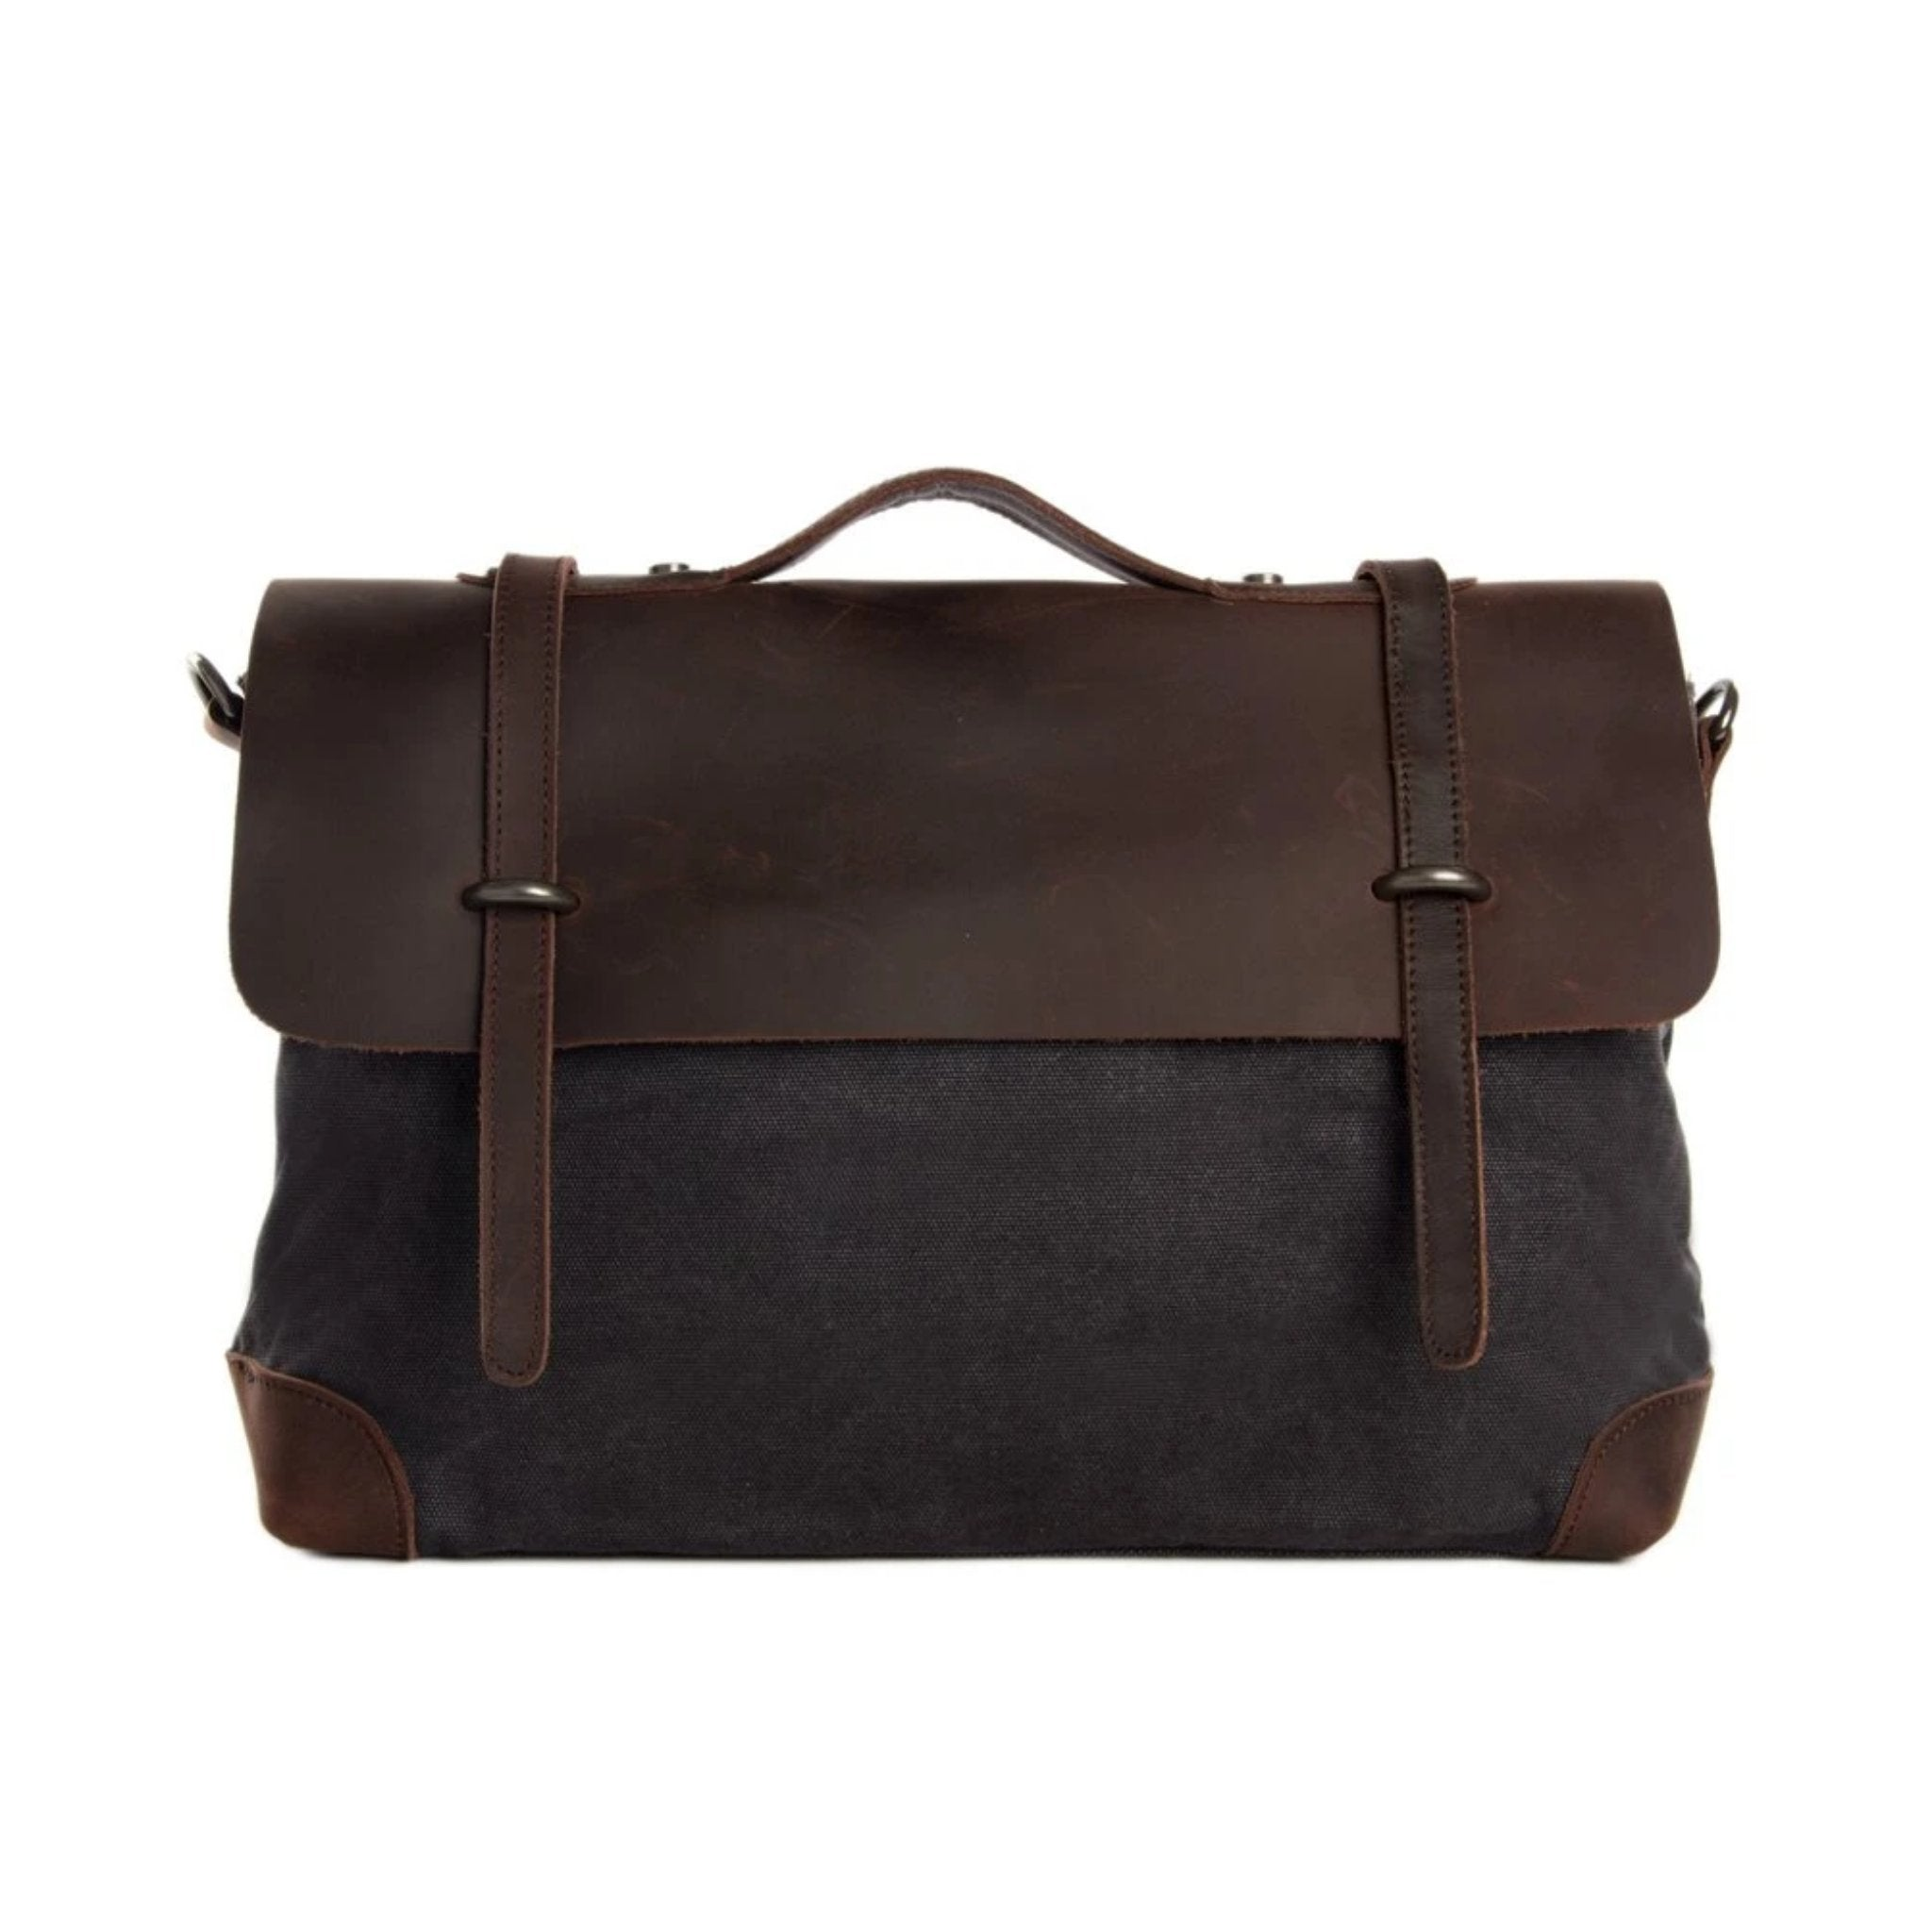 Waxed Canvas Leather satchel Messenger Bag - Dark Grey/Coffee - Blue Sebe